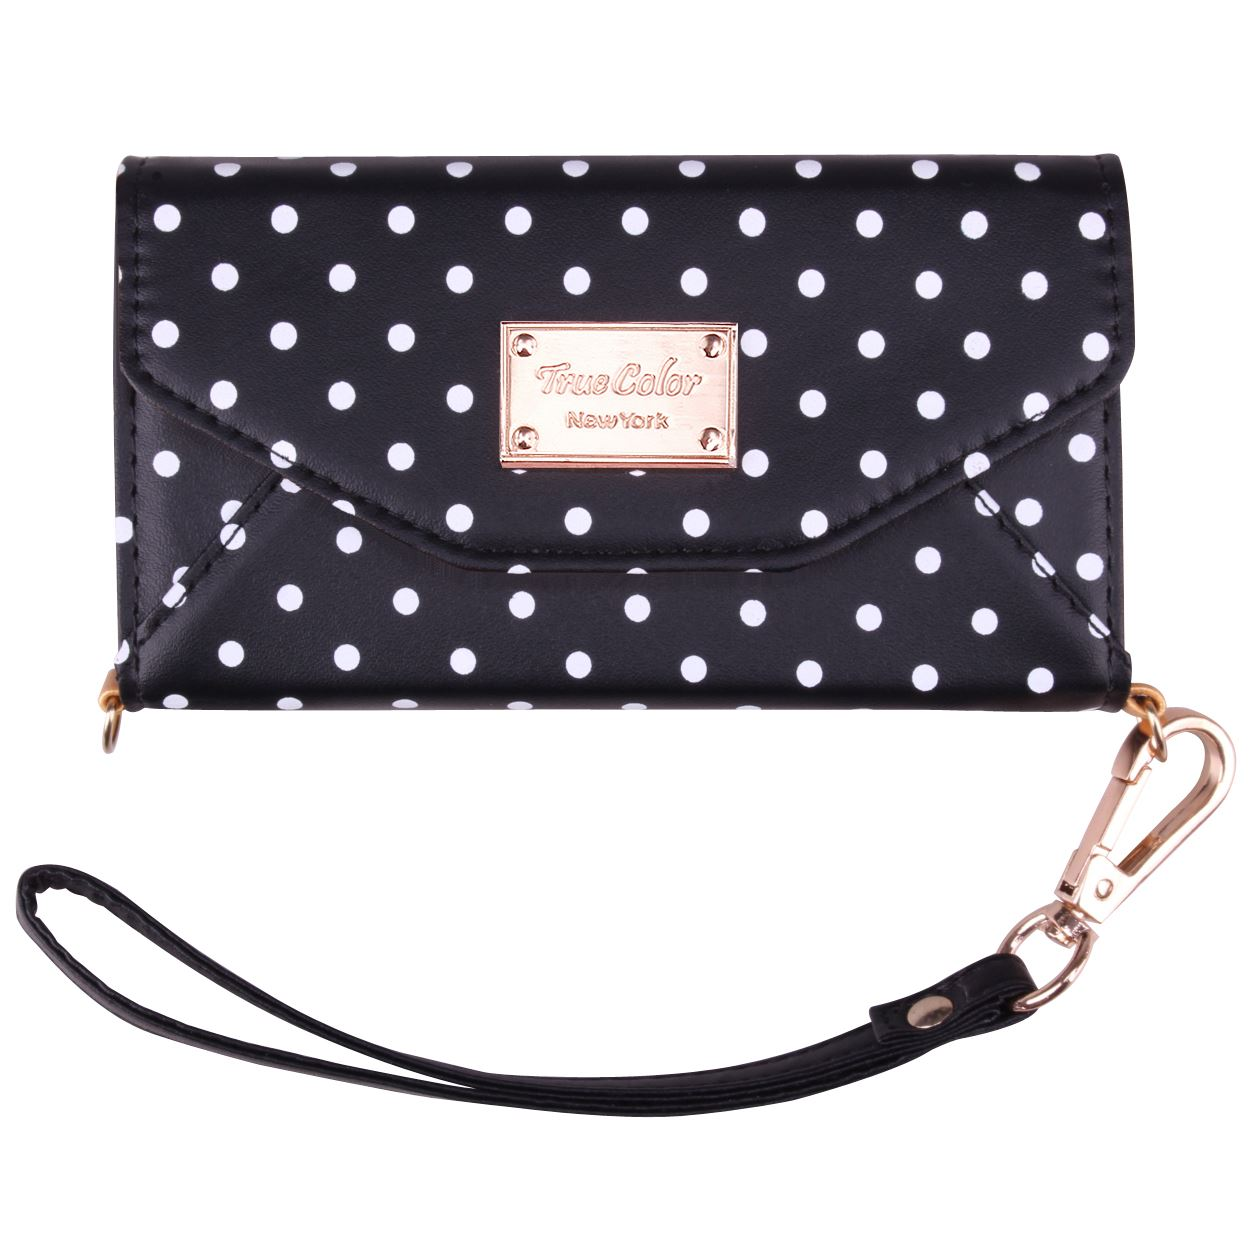 iPhone 6 6s Wallet Case, True Color Premium Leatherette Polka Dots Wristlet Clutch Folio Tri-Fold Wallet Purse Case Cover - Black